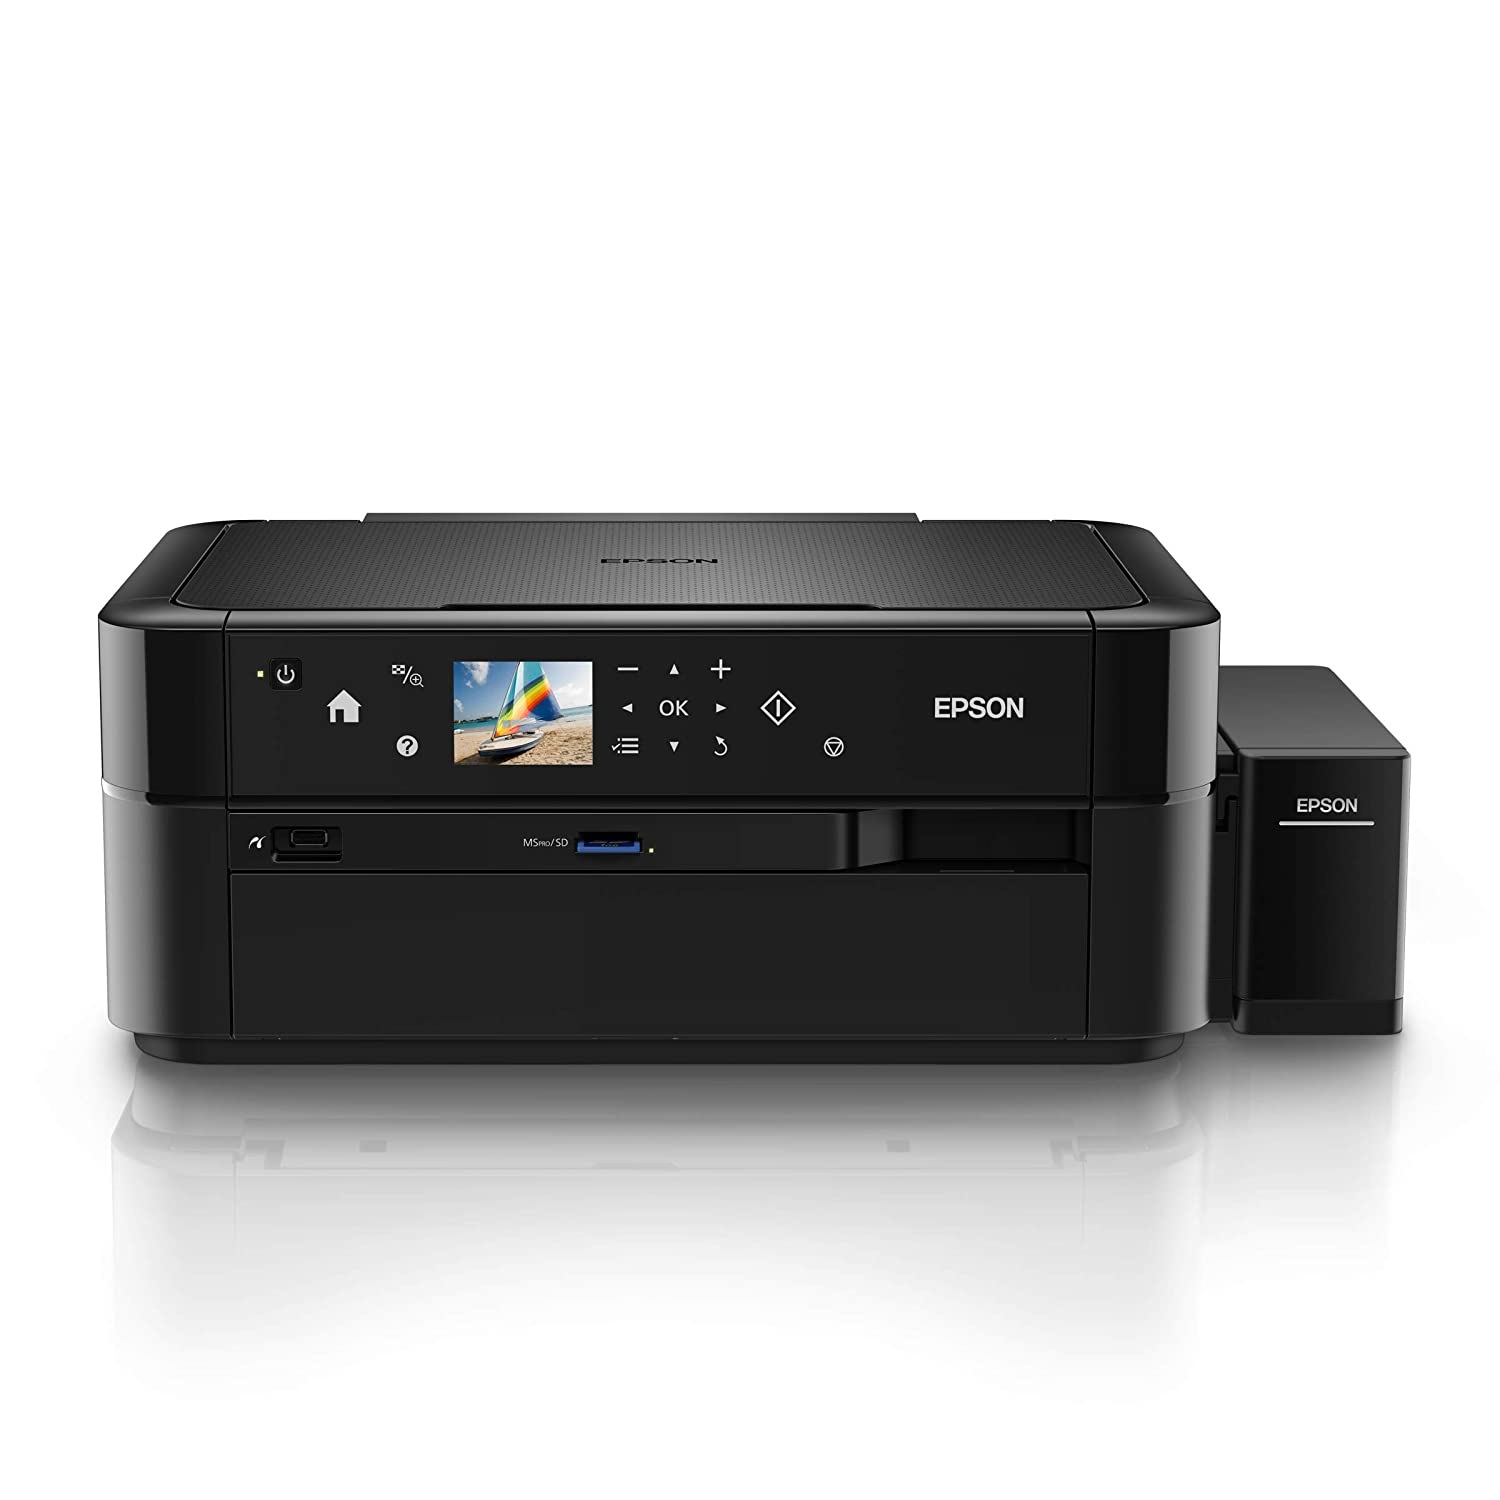 Buy Epson L850 Multi Function Printer Black Online At Main Board L805 Wifi Low Prices In India Reviews Ratings